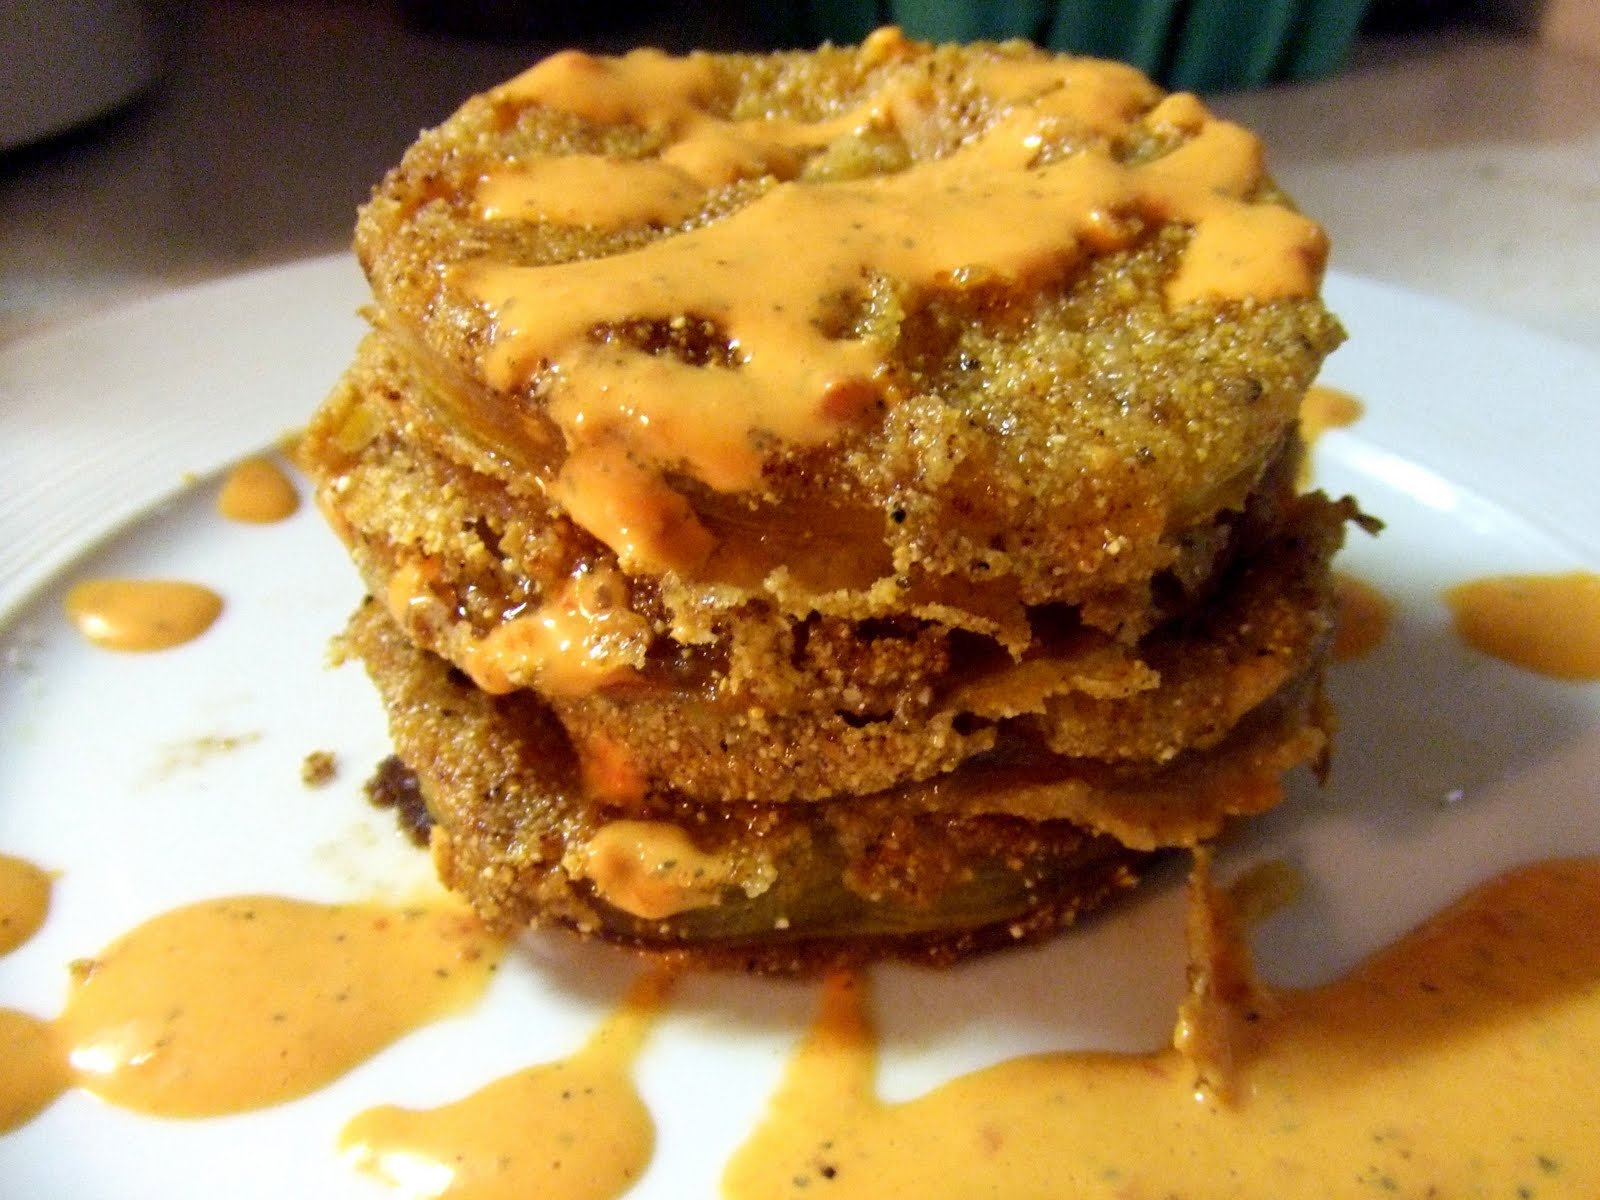 ... Vegan Makeover: Fried Green Tomatoes with Red Pepper Aioli Edition